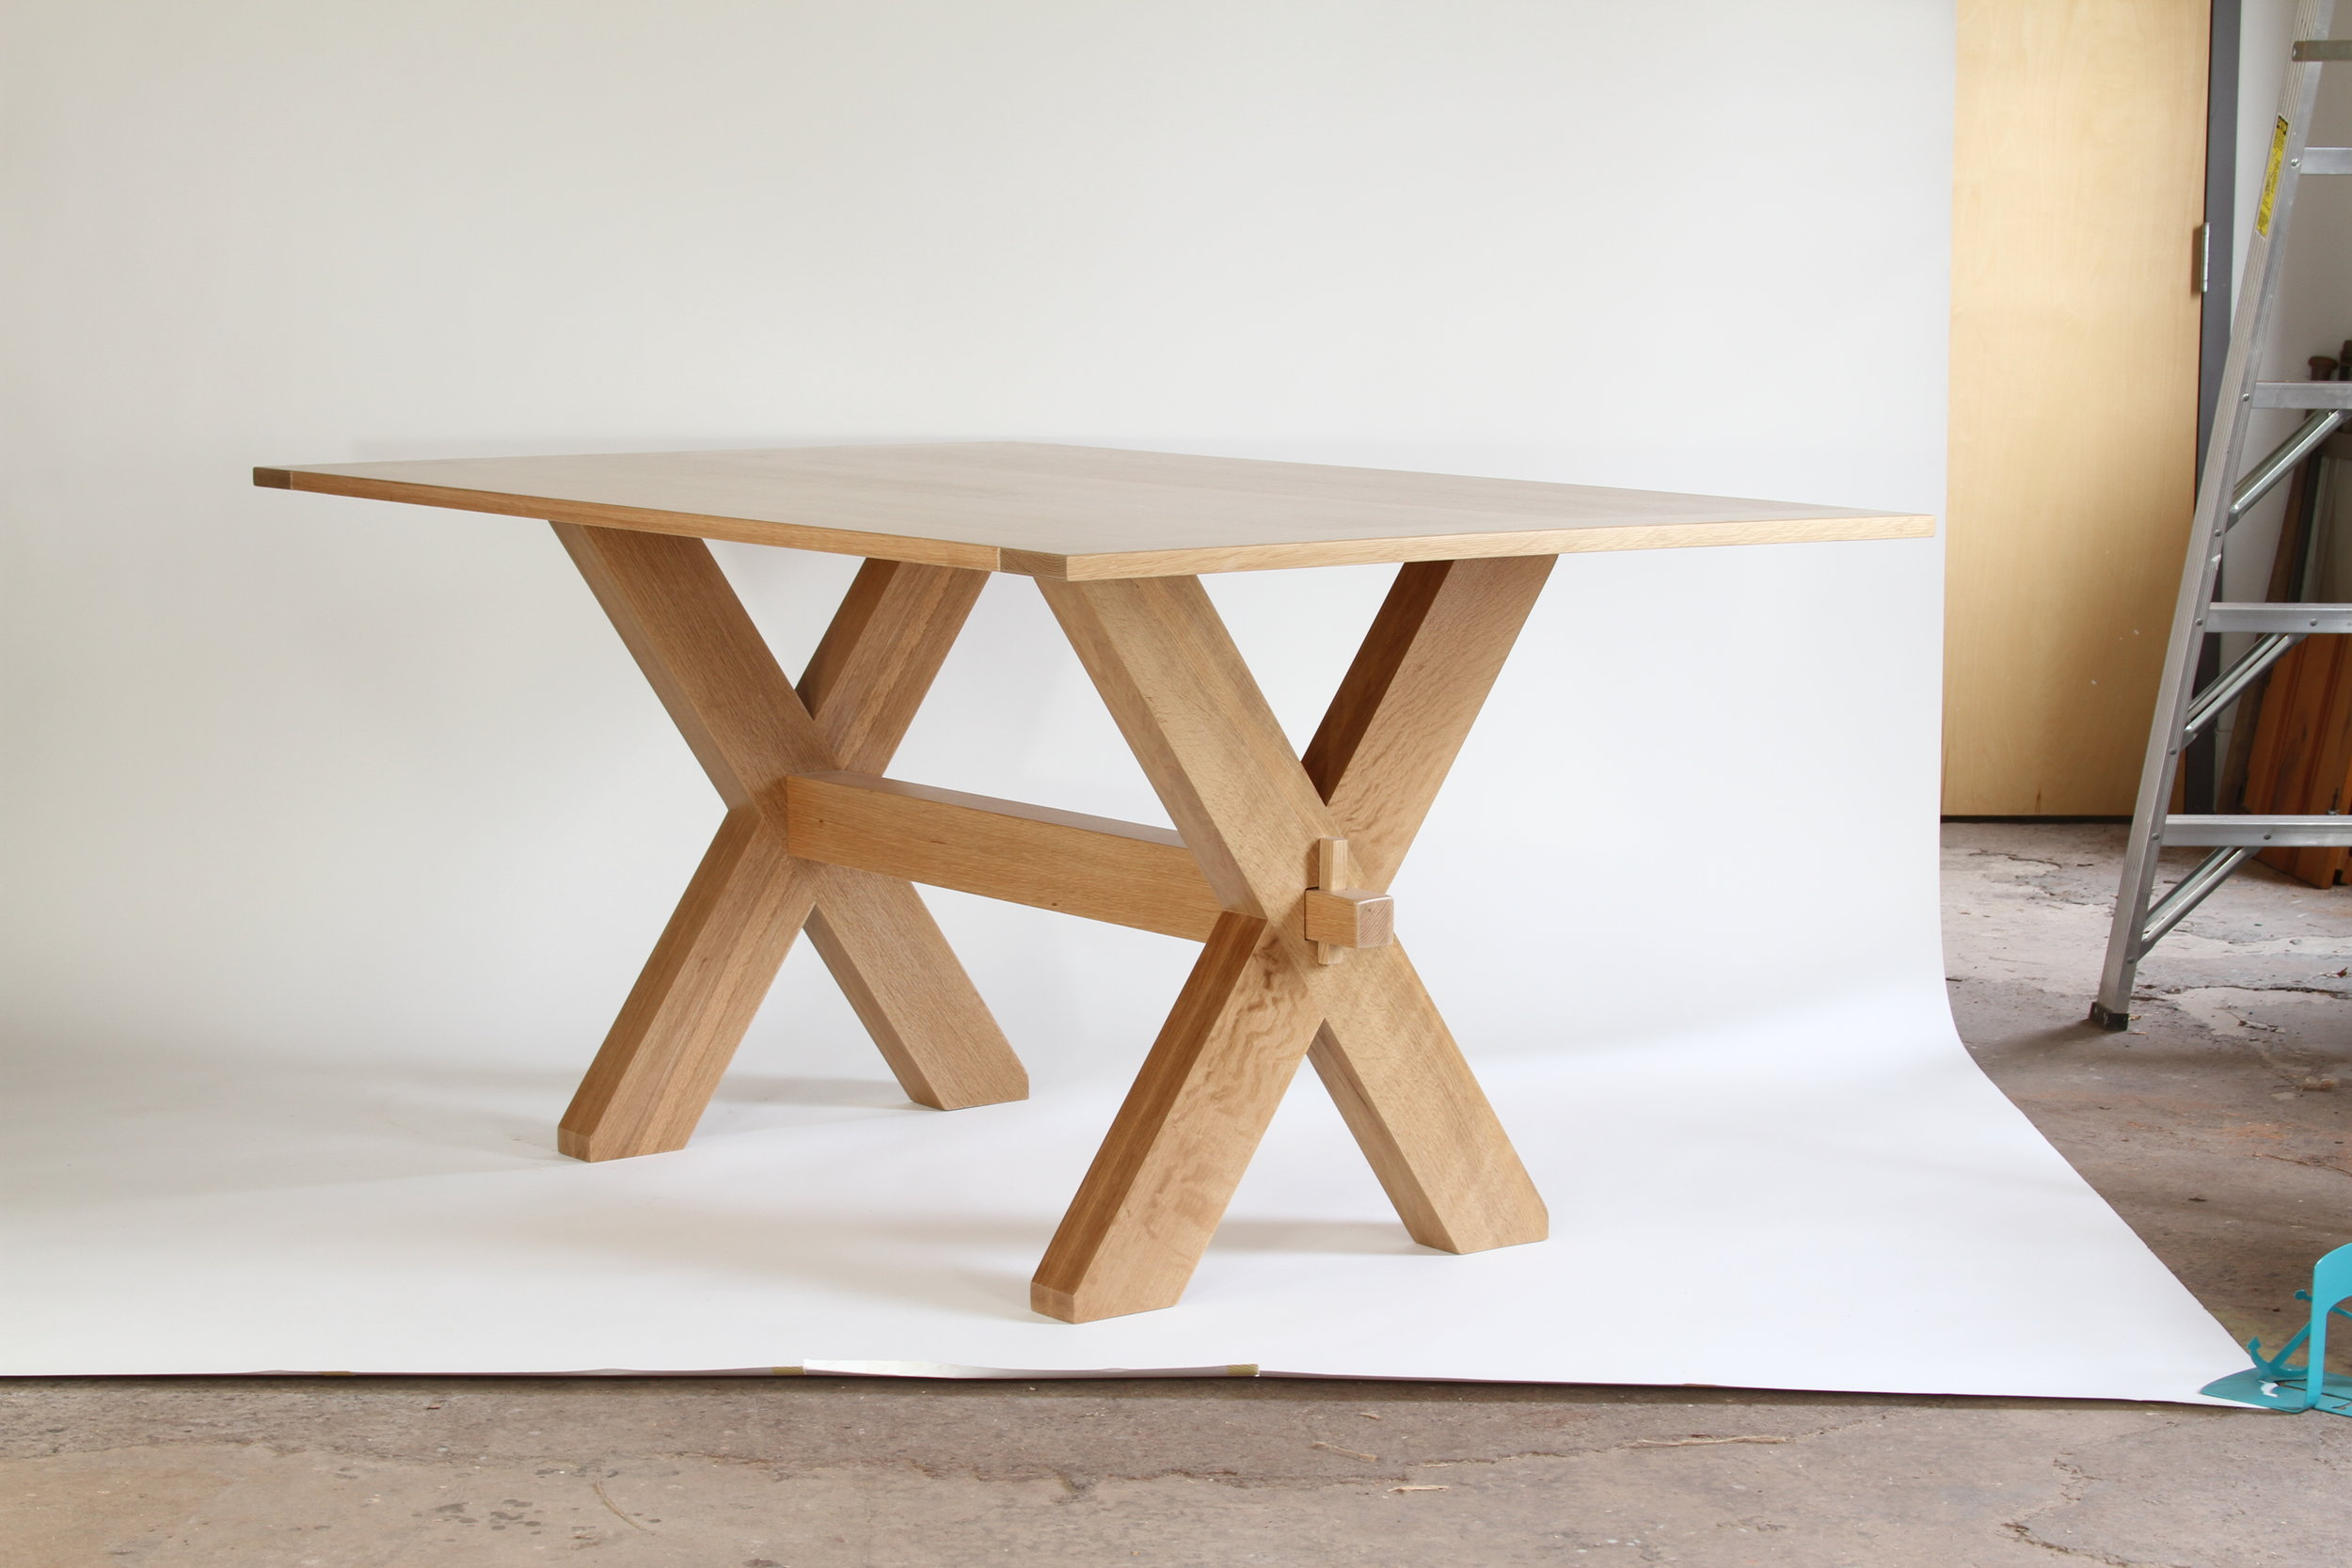 O&G Studio White Oak Dining Table Dining 48 Windsor Contemporary Side Americana Seating Modern Designed Design Interior Seating Clear Coat Natural Oak Rift Sawn Whitewashed Driftwood Bronze Wedge Detail Pin Peg Stained